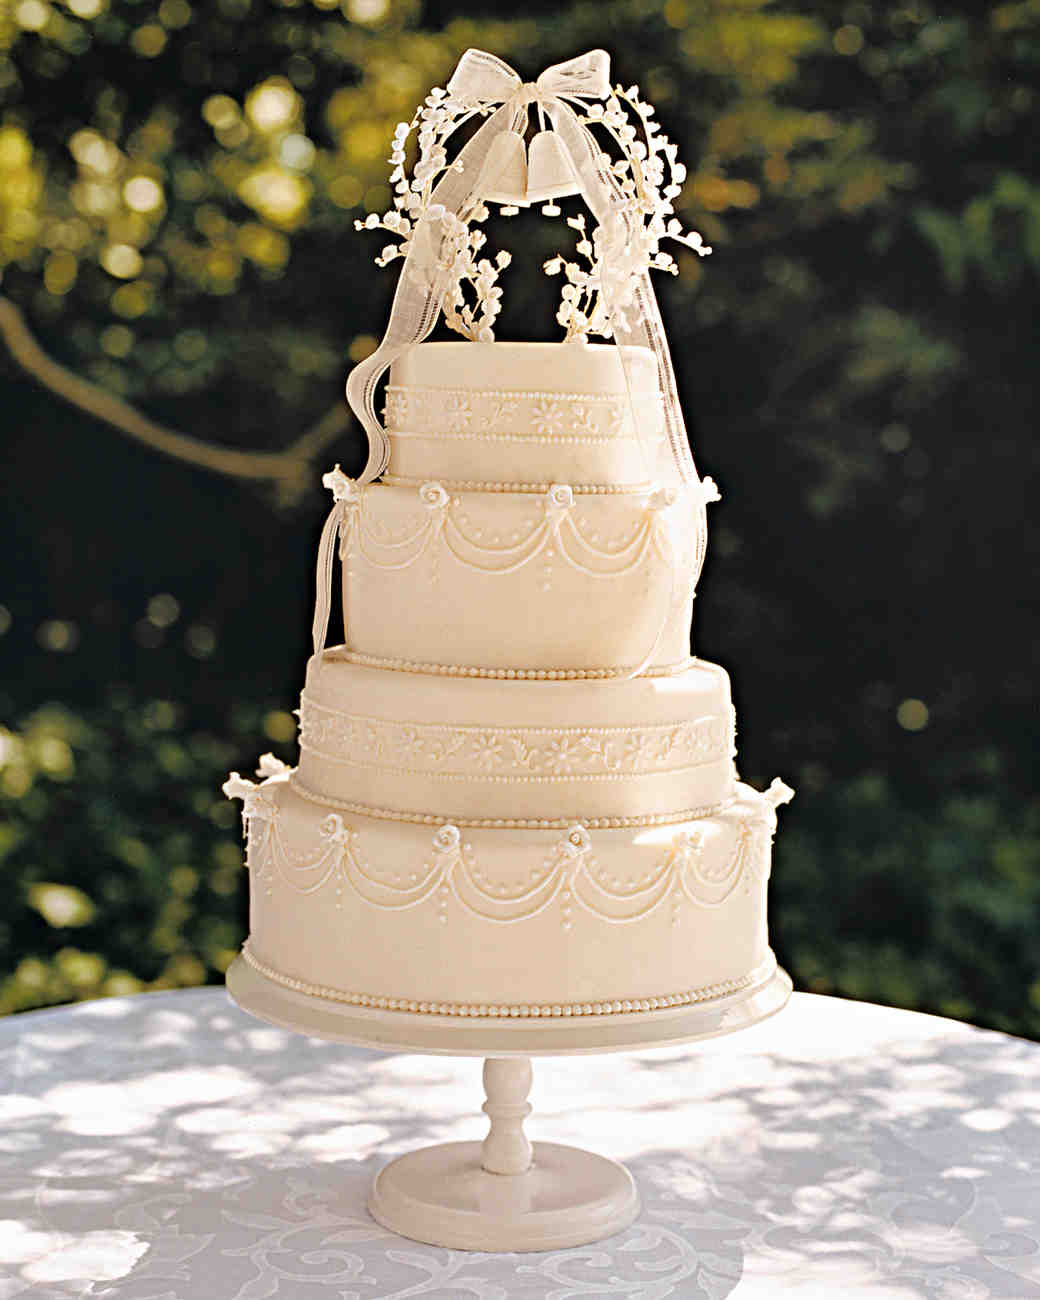 quirky wedding cake toppers 36 of the best wedding cake toppers martha stewart weddings 18947